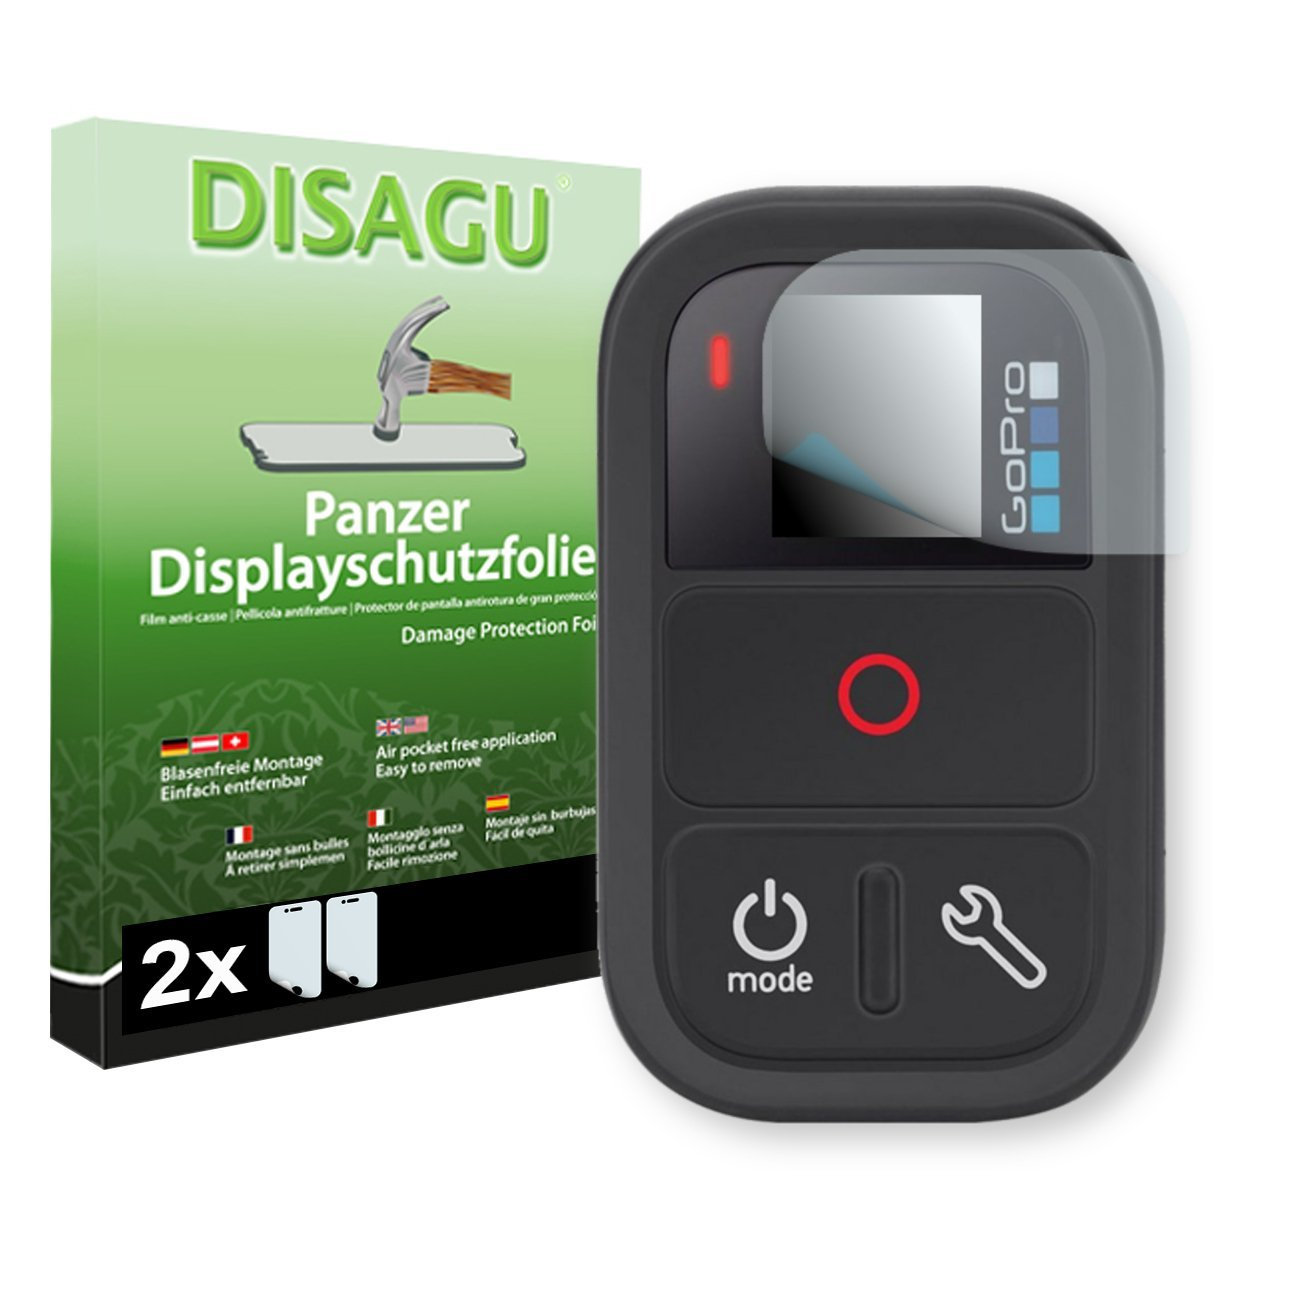 2 x DISAGU Armor Screen Protector GoPro Remote Screen Fracture Protection Film